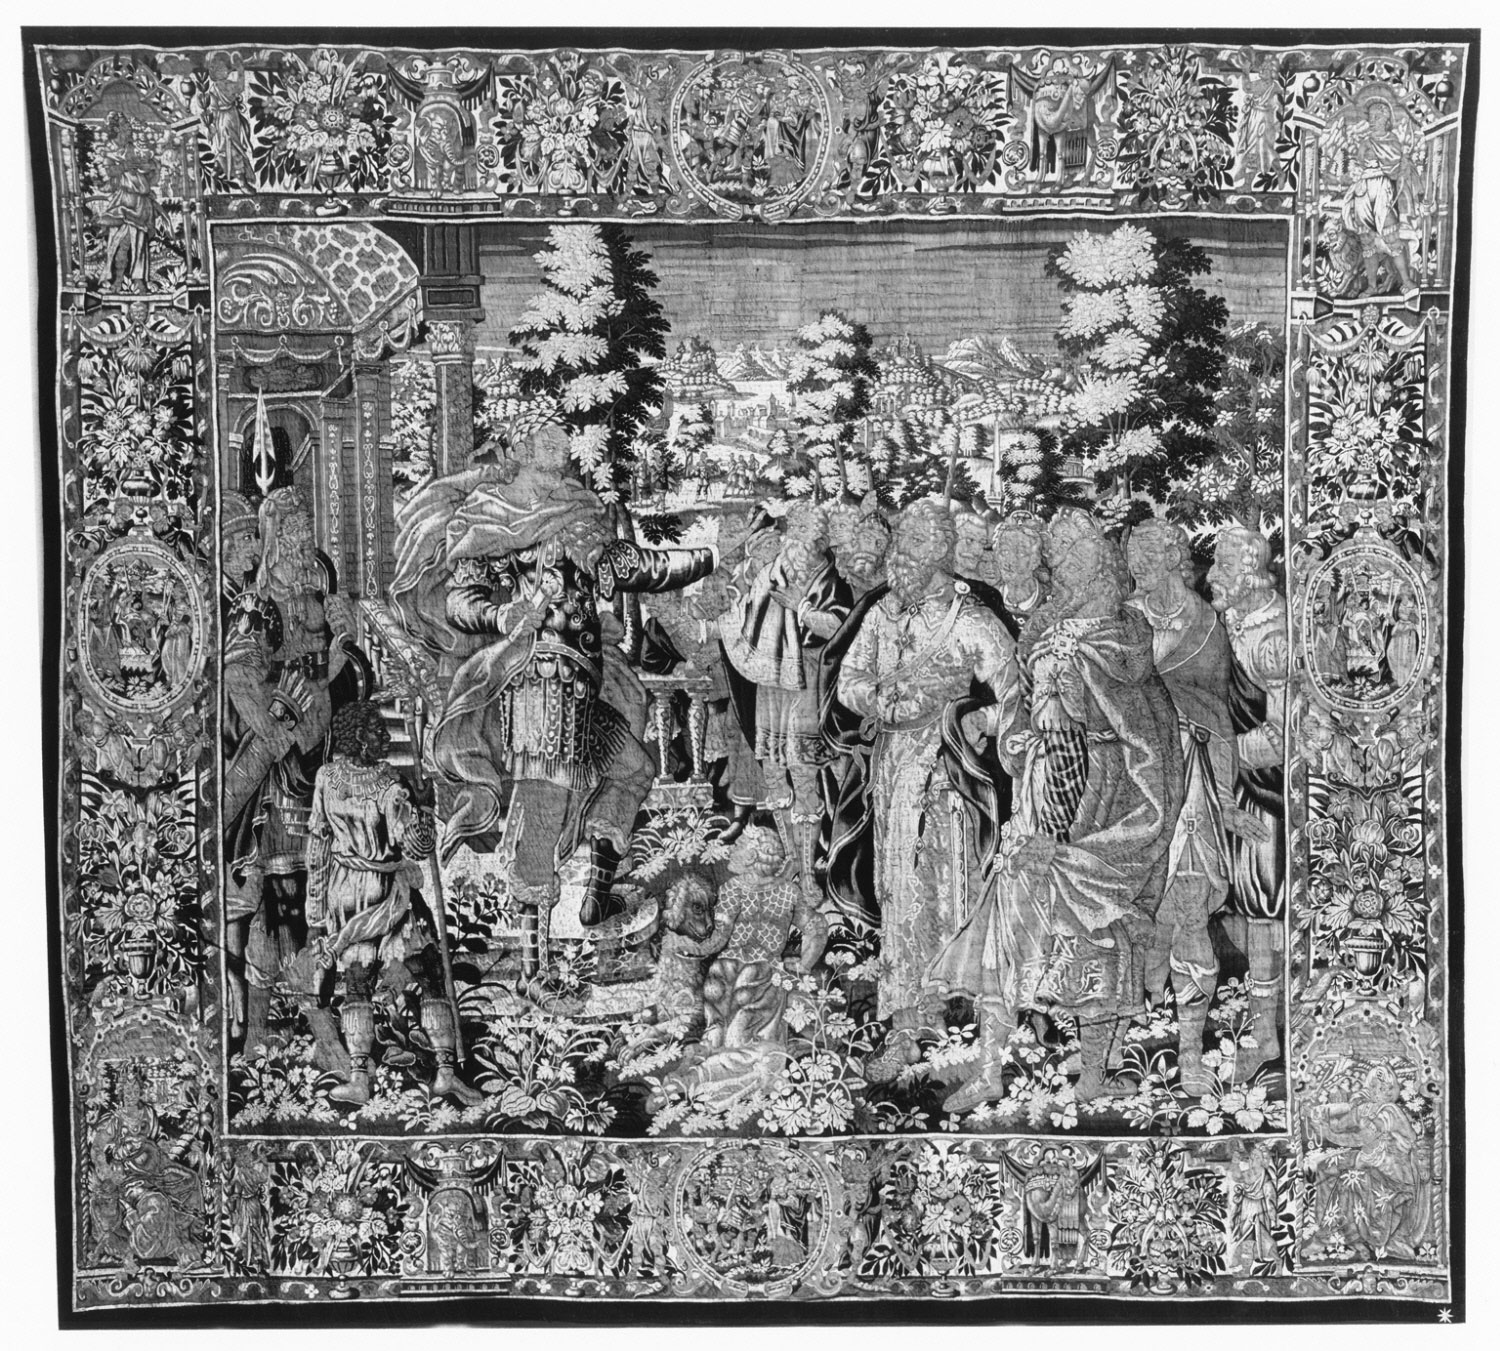 Tapestry showing a Scene from Roman History, perhaps from the Life of the General Scipio?